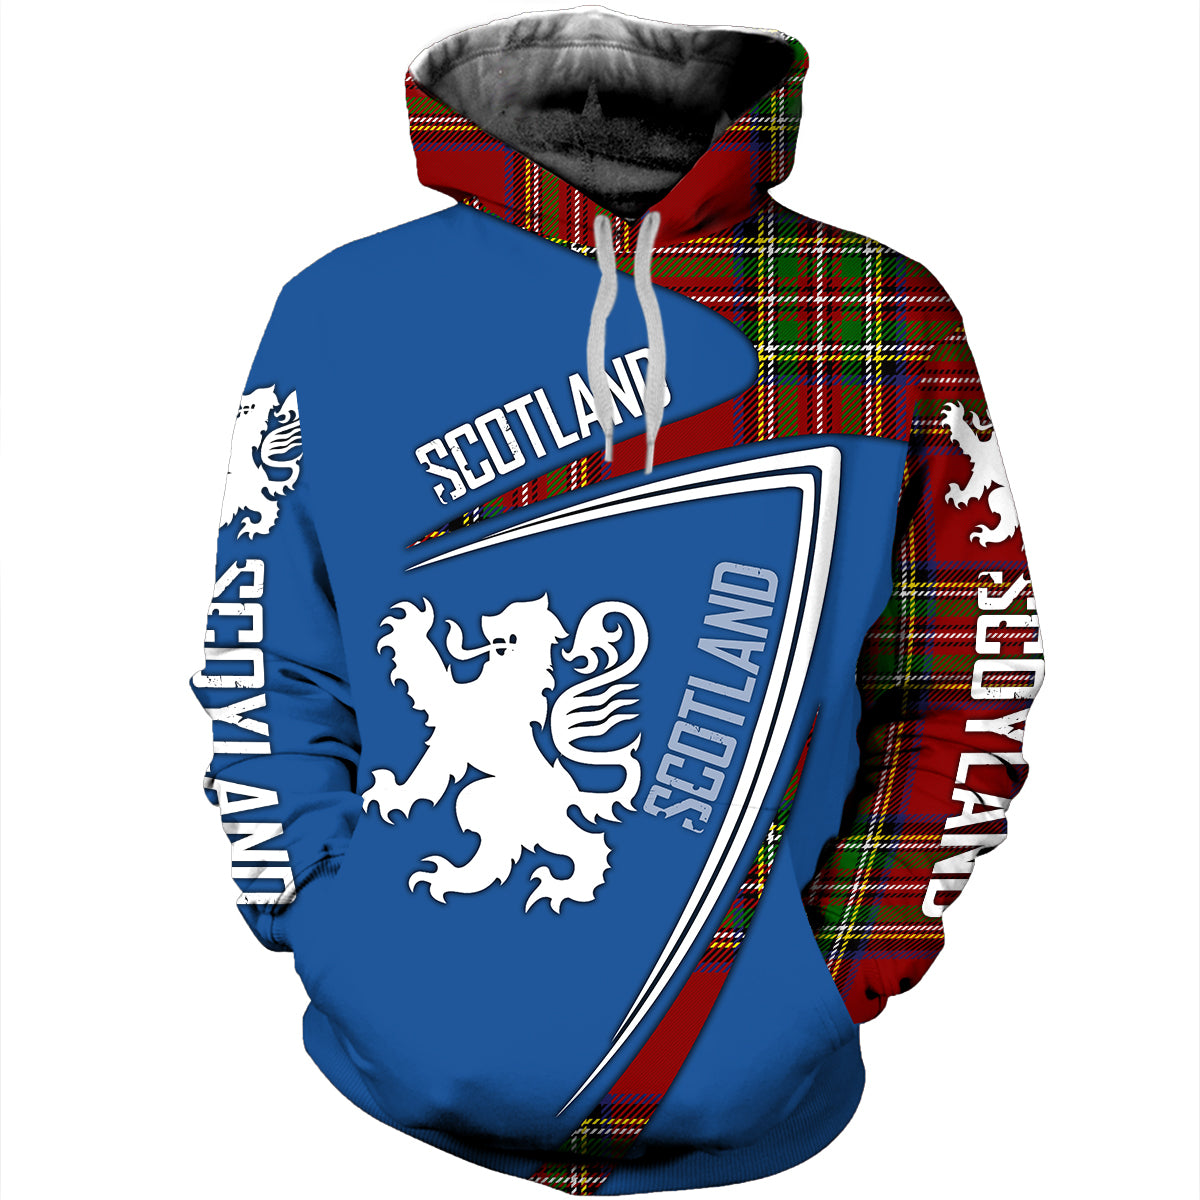 Scotland  3D All Over Printed Hoodie, T-Shirt, Sweater dah181203